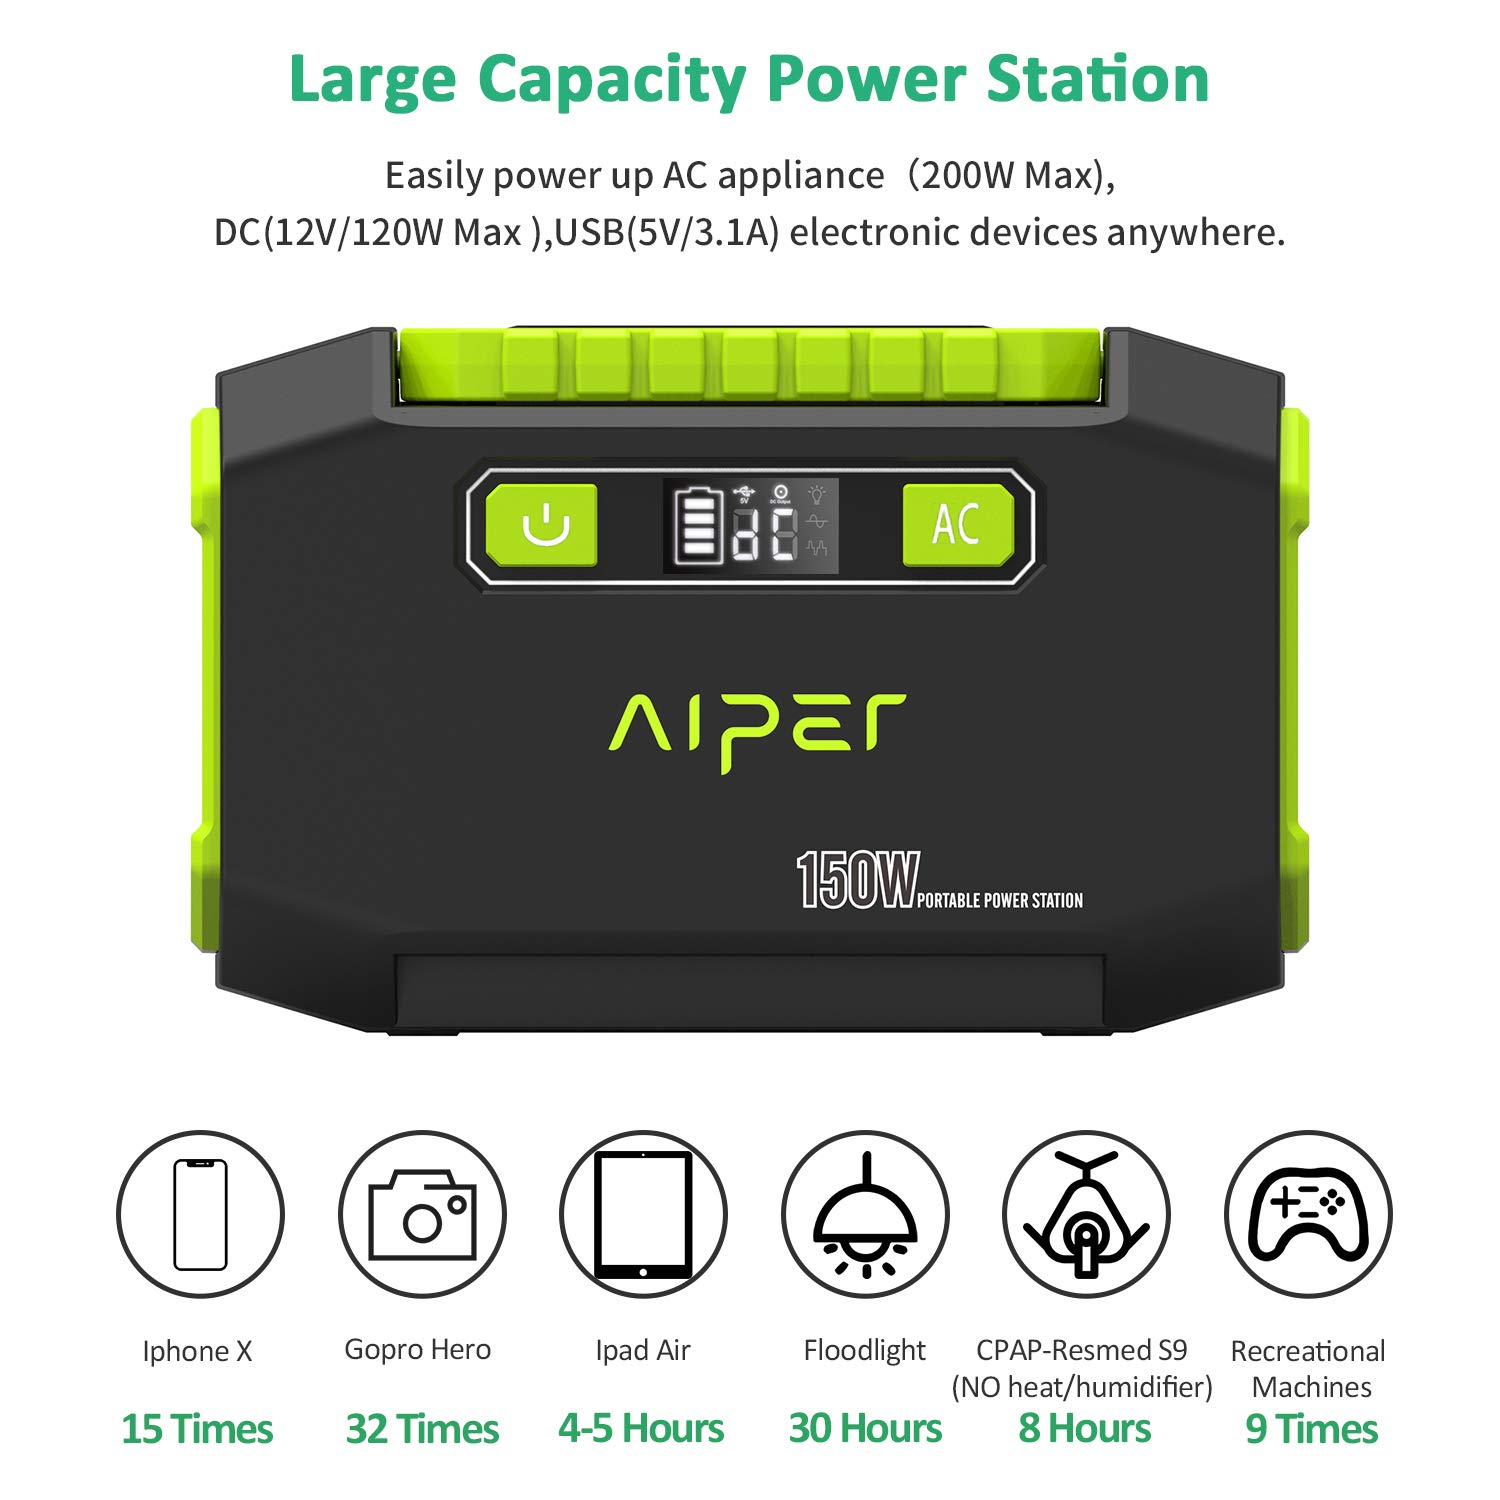 AIPER Portable Power Station 167Wh 45000mAh Solar Generator Lithium Battery Backup Power Supply with Dual 110V AC Outlet, 3 DC Ports, 2 USB Outputs for Home Emergency Camping CPAP Outdoors by AIPER (Image #2)